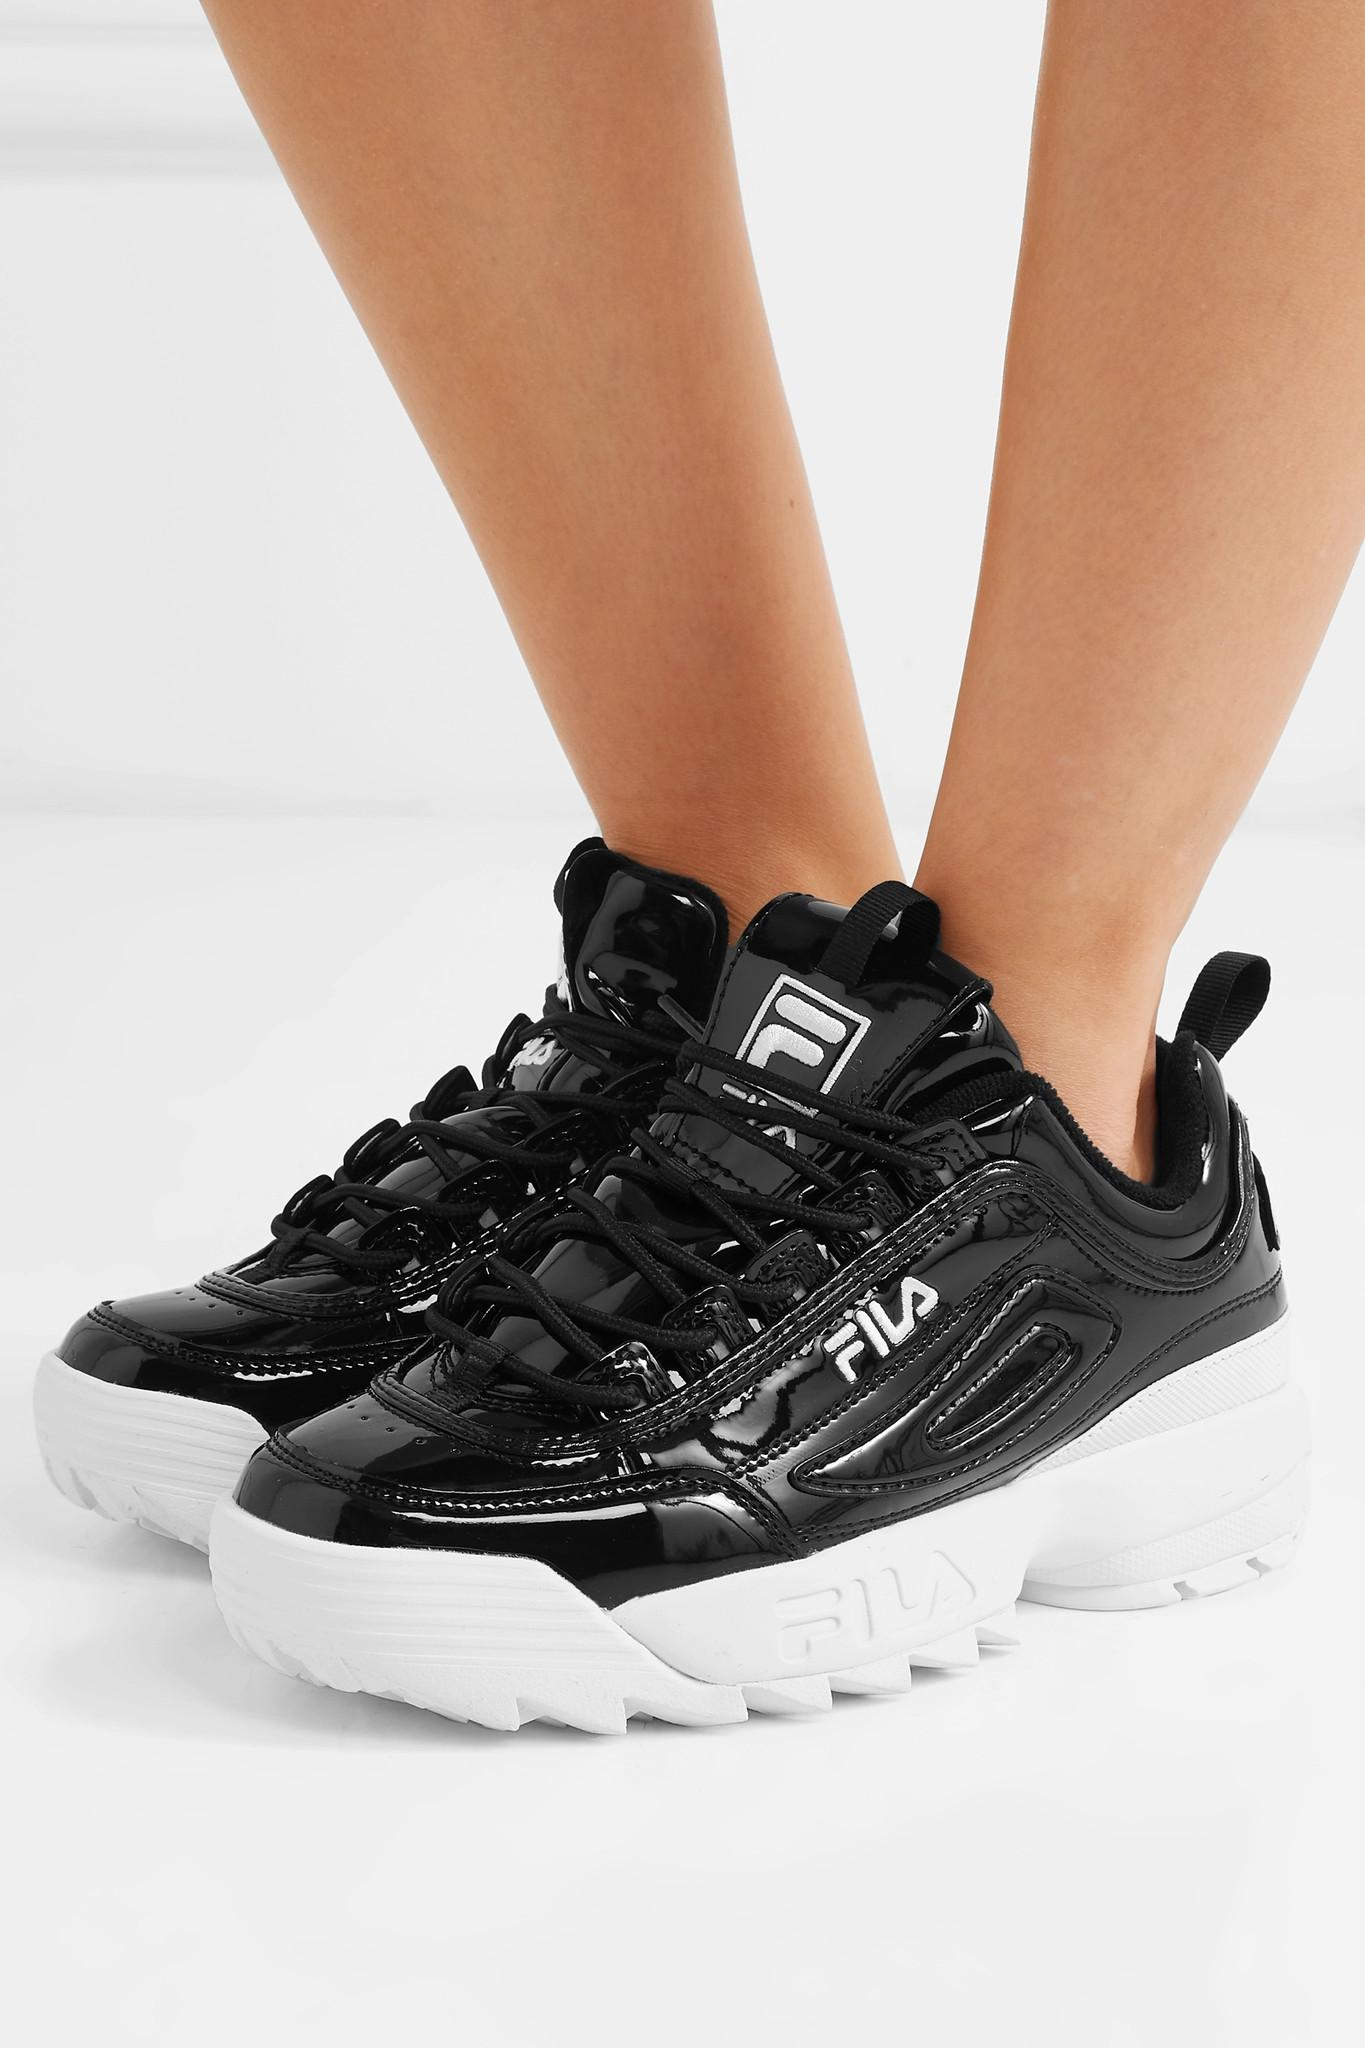 meticulous dyeing processes choose official newest Disruptor Ii Premium Logo-embroidered Patent-leather Sneakers